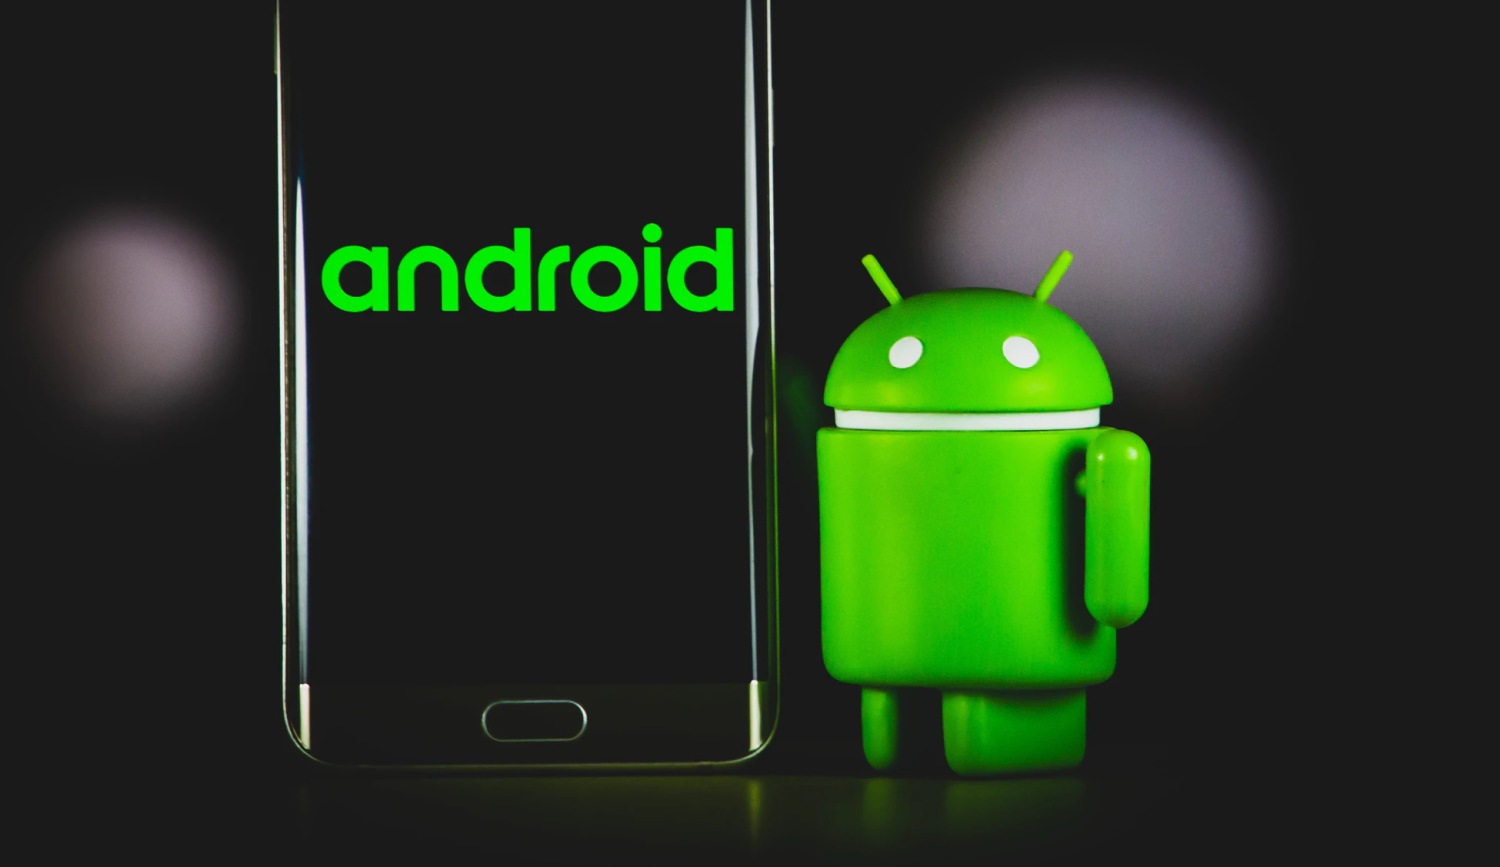 Google: Android bug detected exploited in the wild